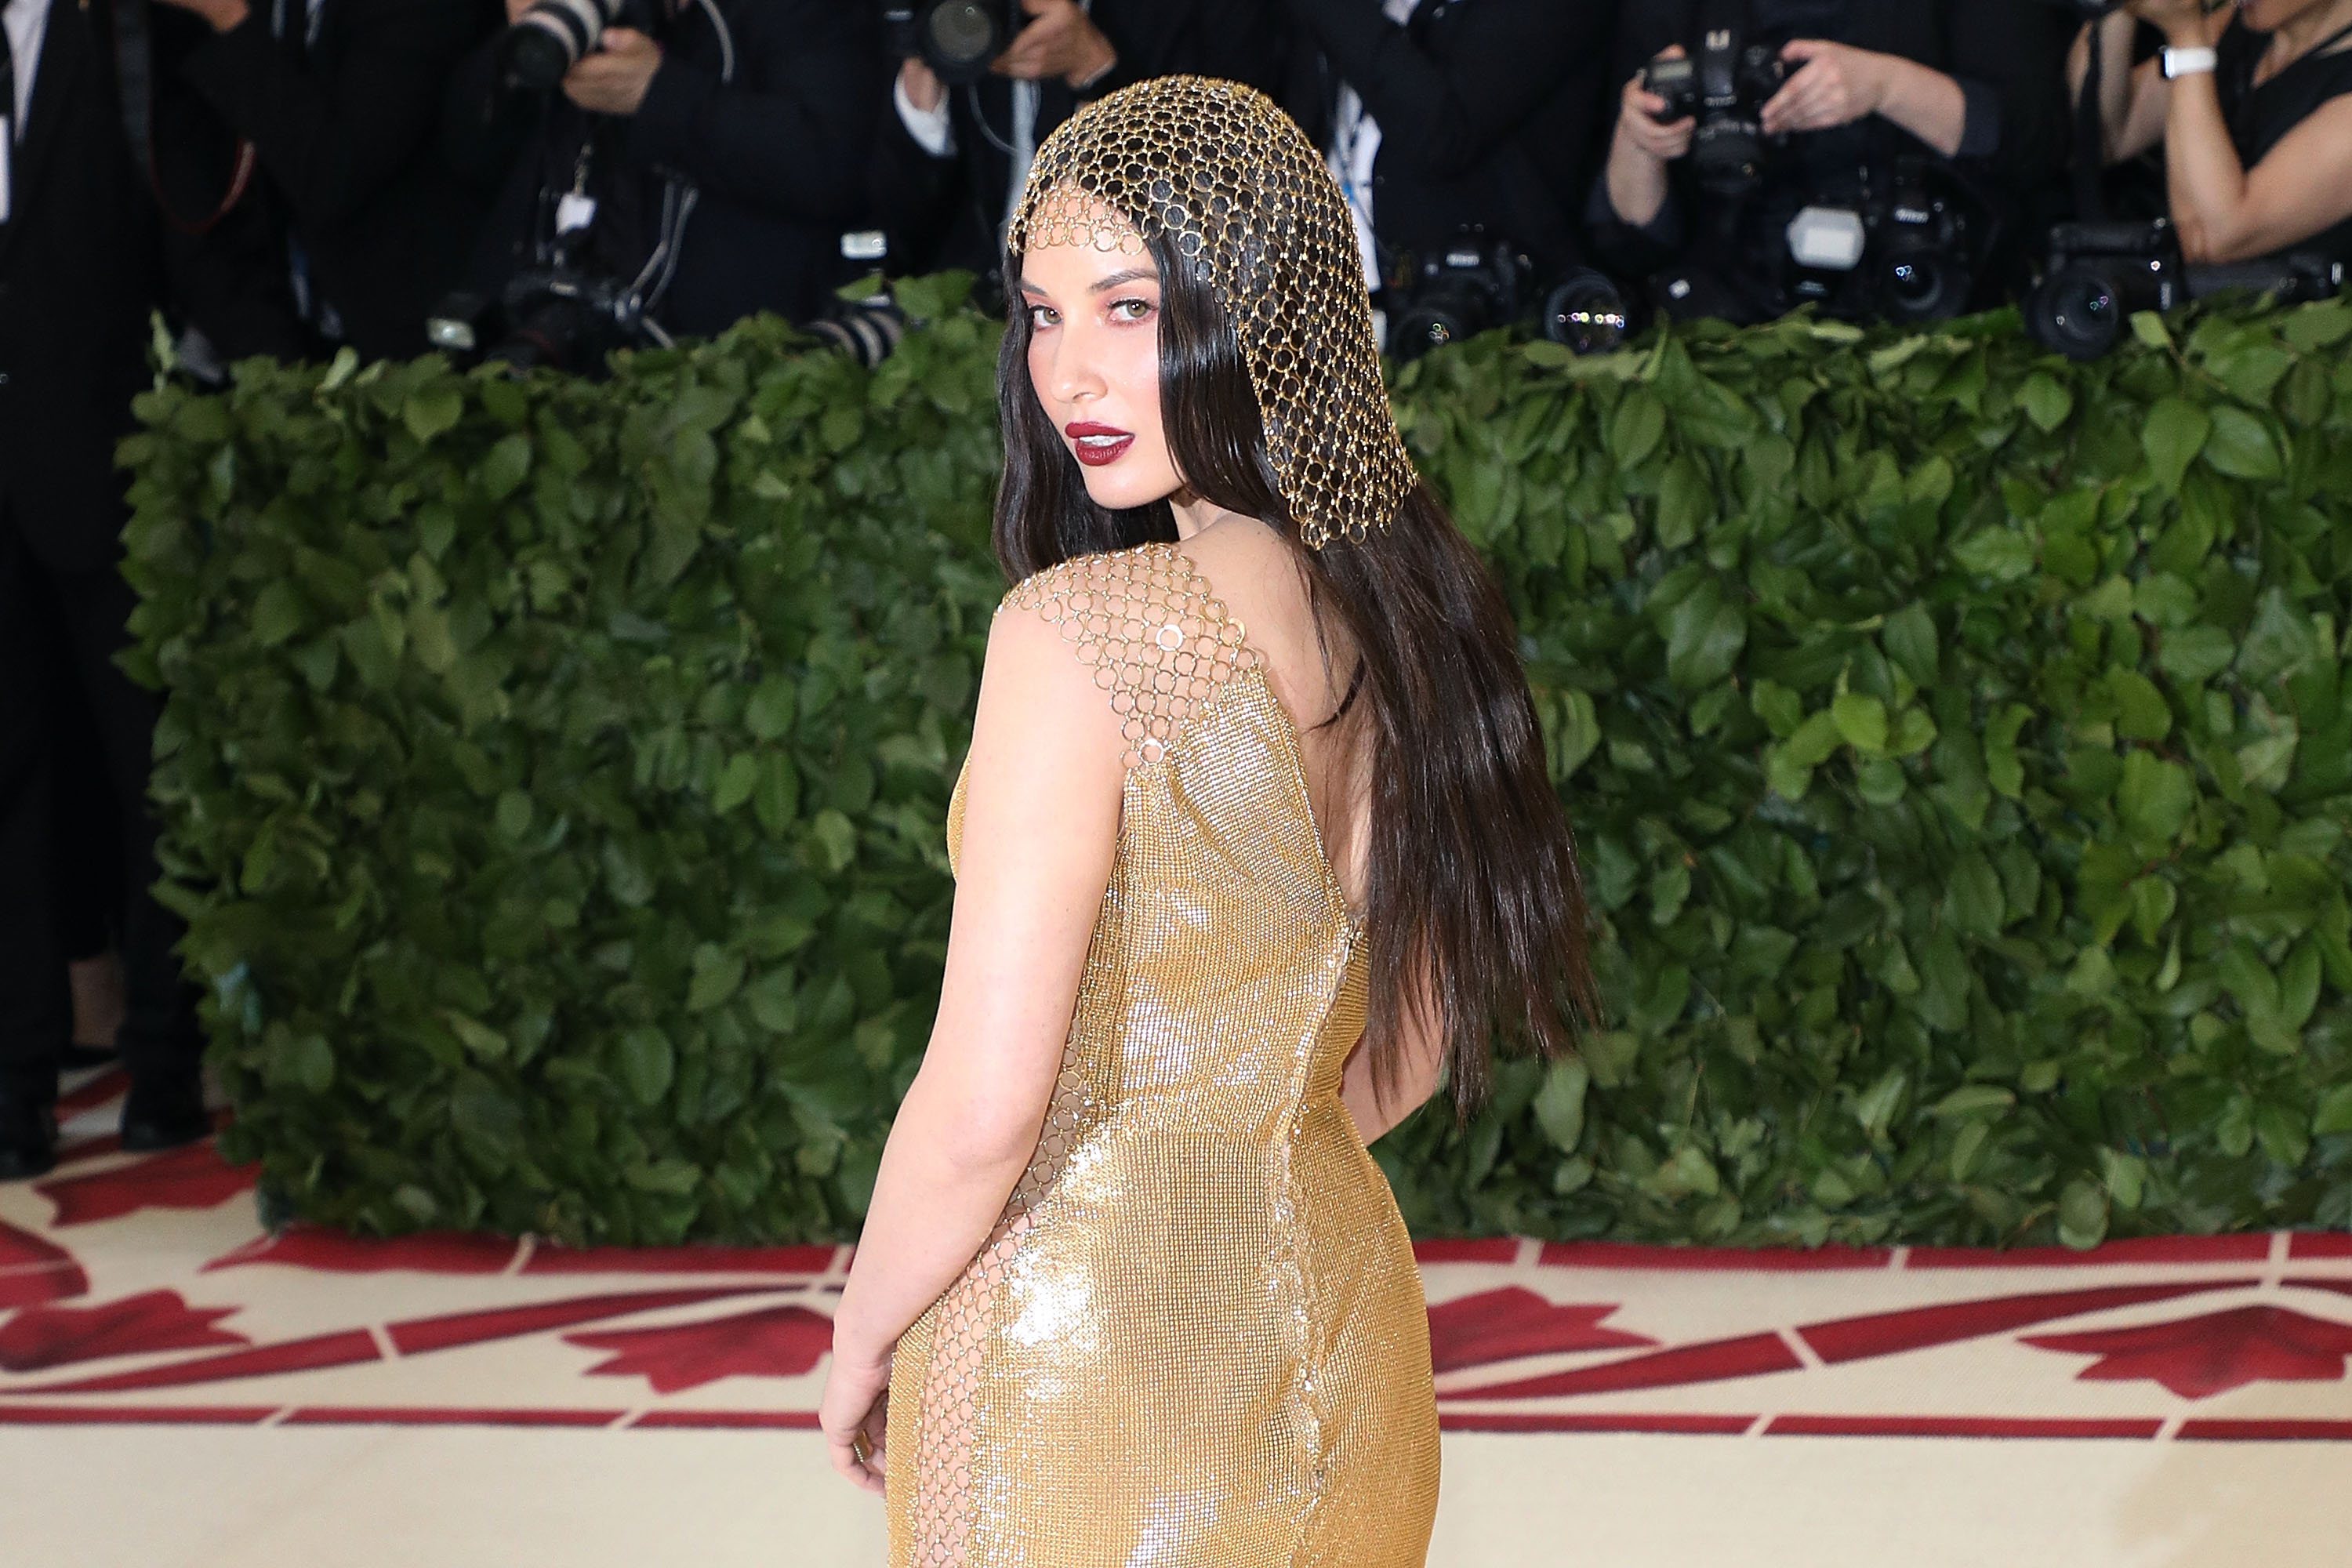 Olivia Munn attends the 2018 Met Gala in New York City.  (Photo by Taylor Hill/Getty Images)